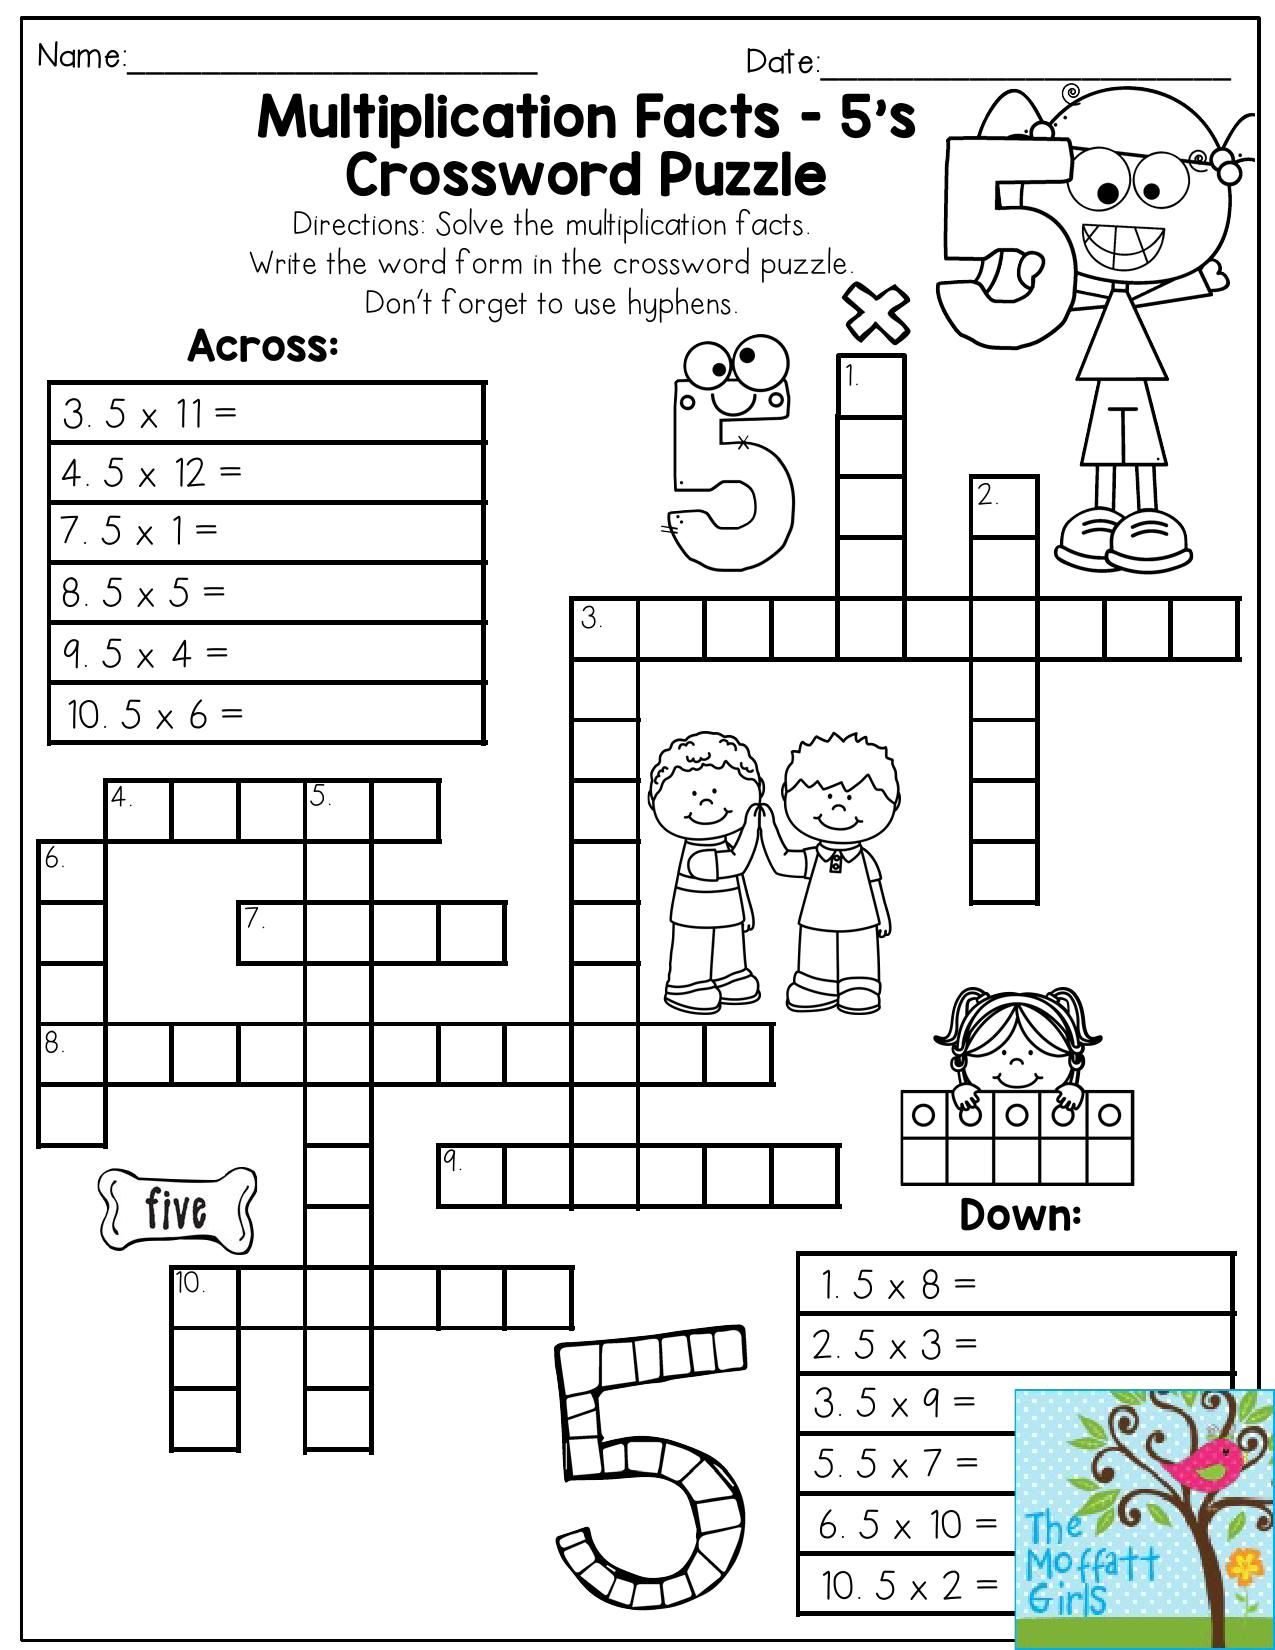 Multiplication Facts Crossword Puzzle- Third Grade Students Love - Printable Crossword Puzzles 3Rd Grade